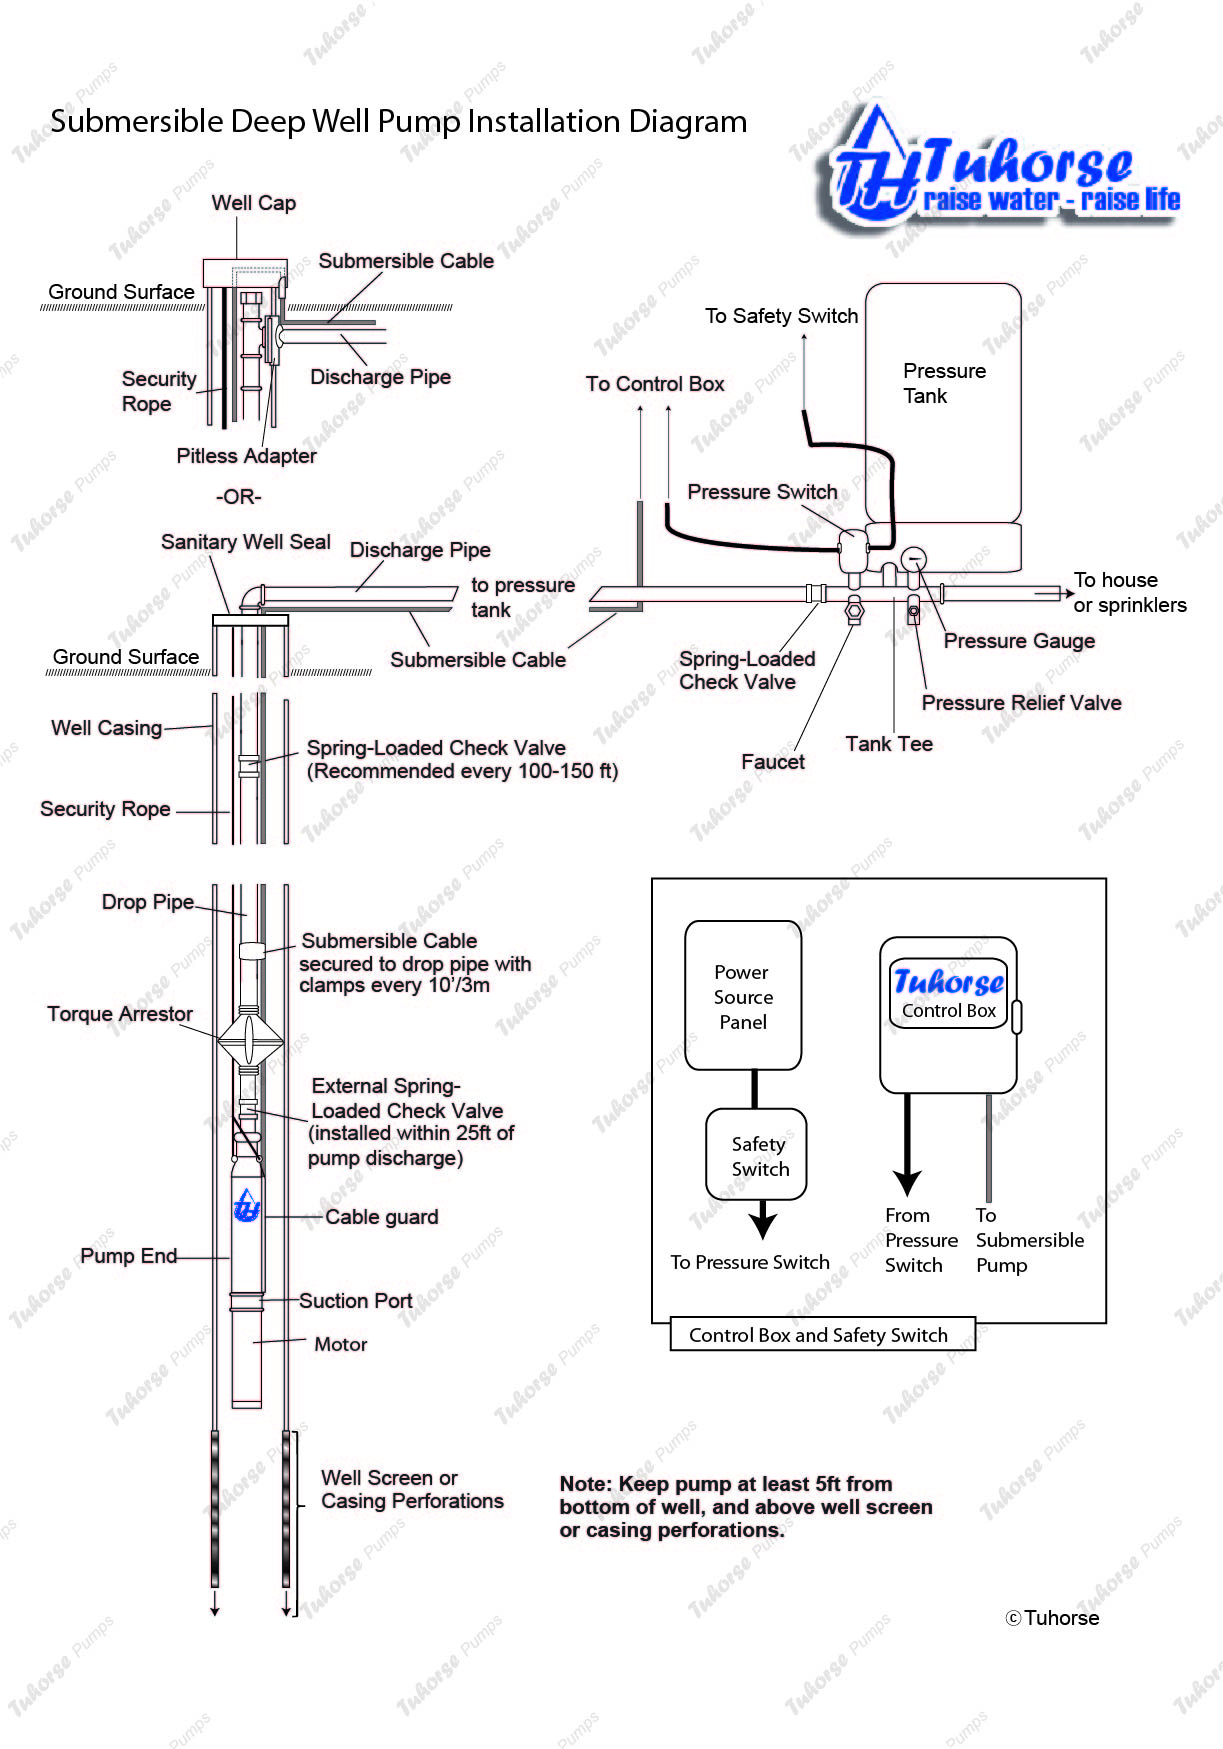 watermarkedinstallationdiagram4 pump installation submersible pump wiring diagram at panicattacktreatment.co